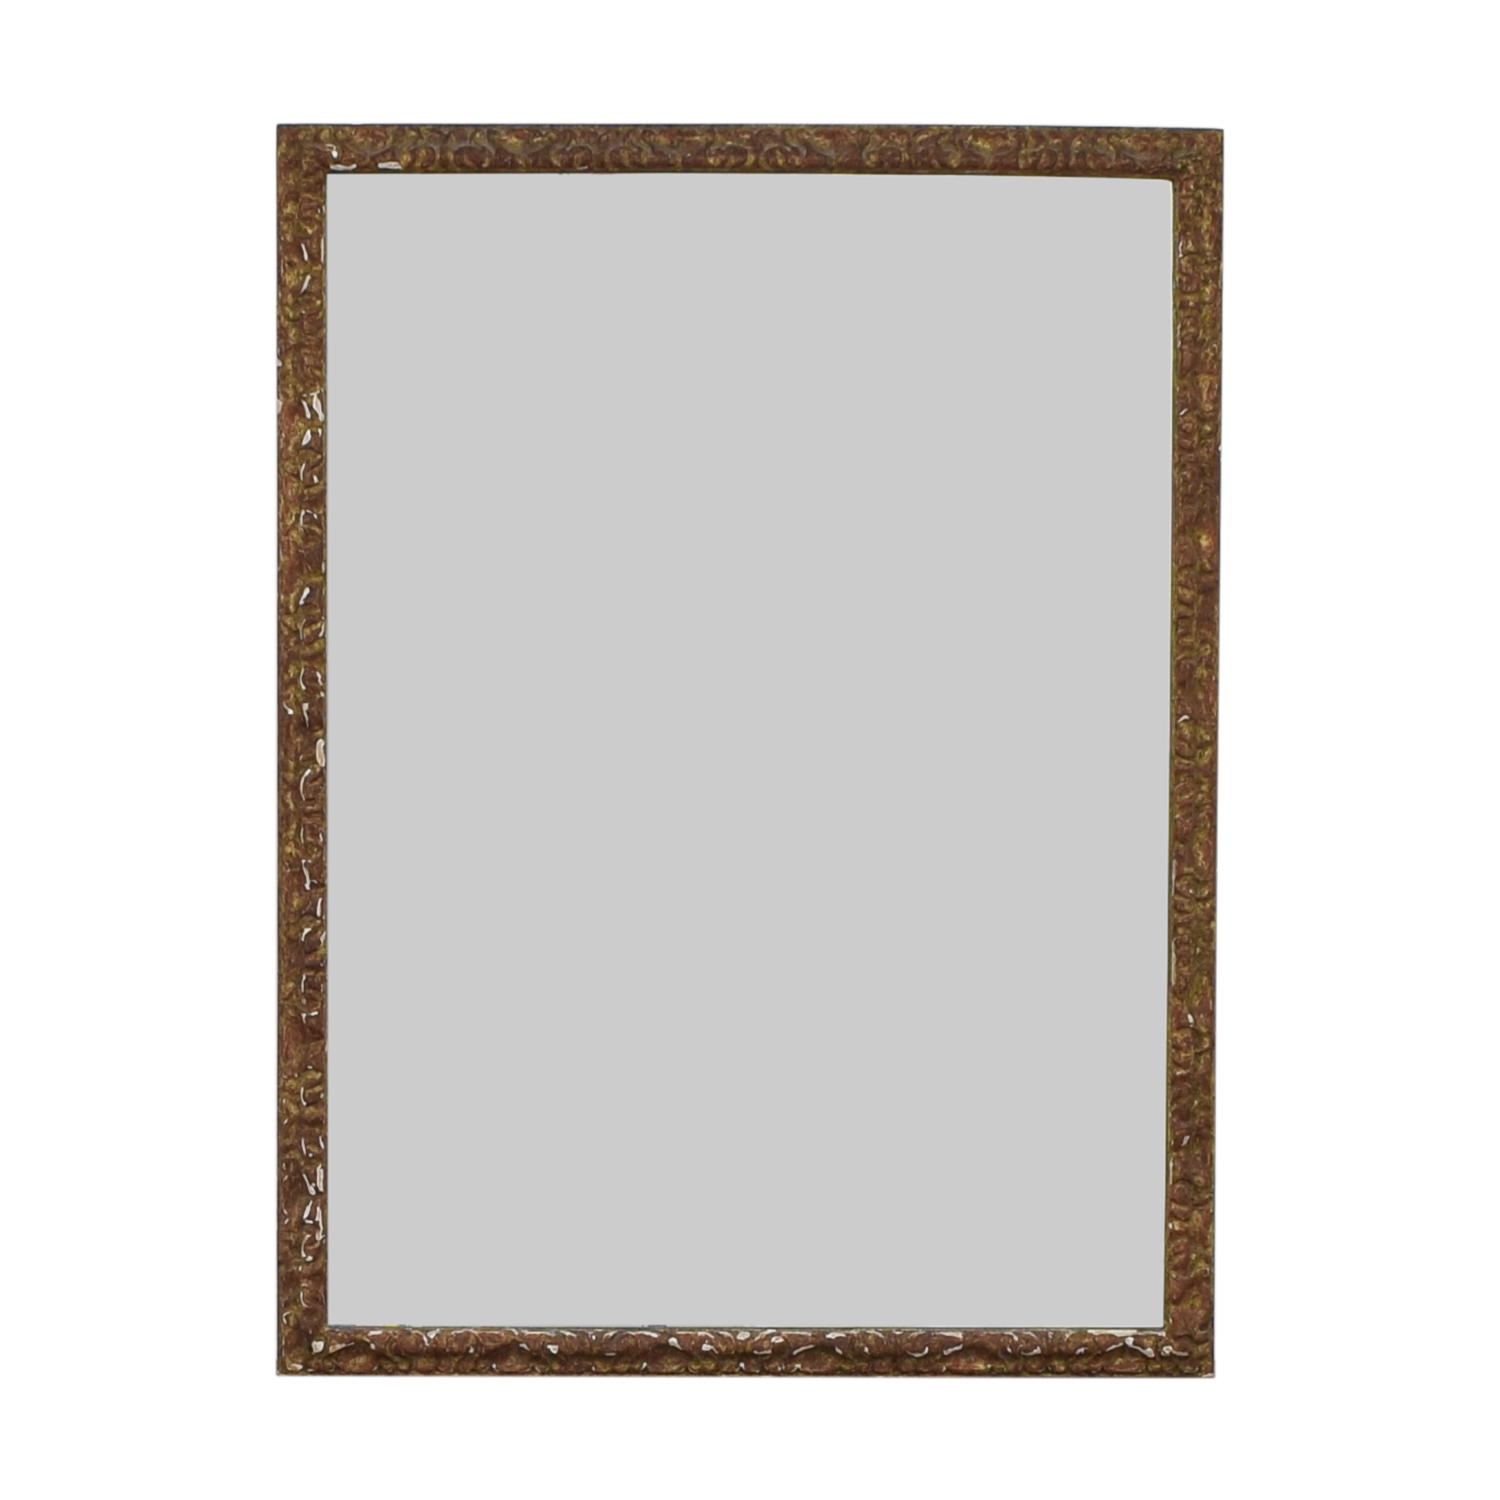 Large Framed Mirror dimensions